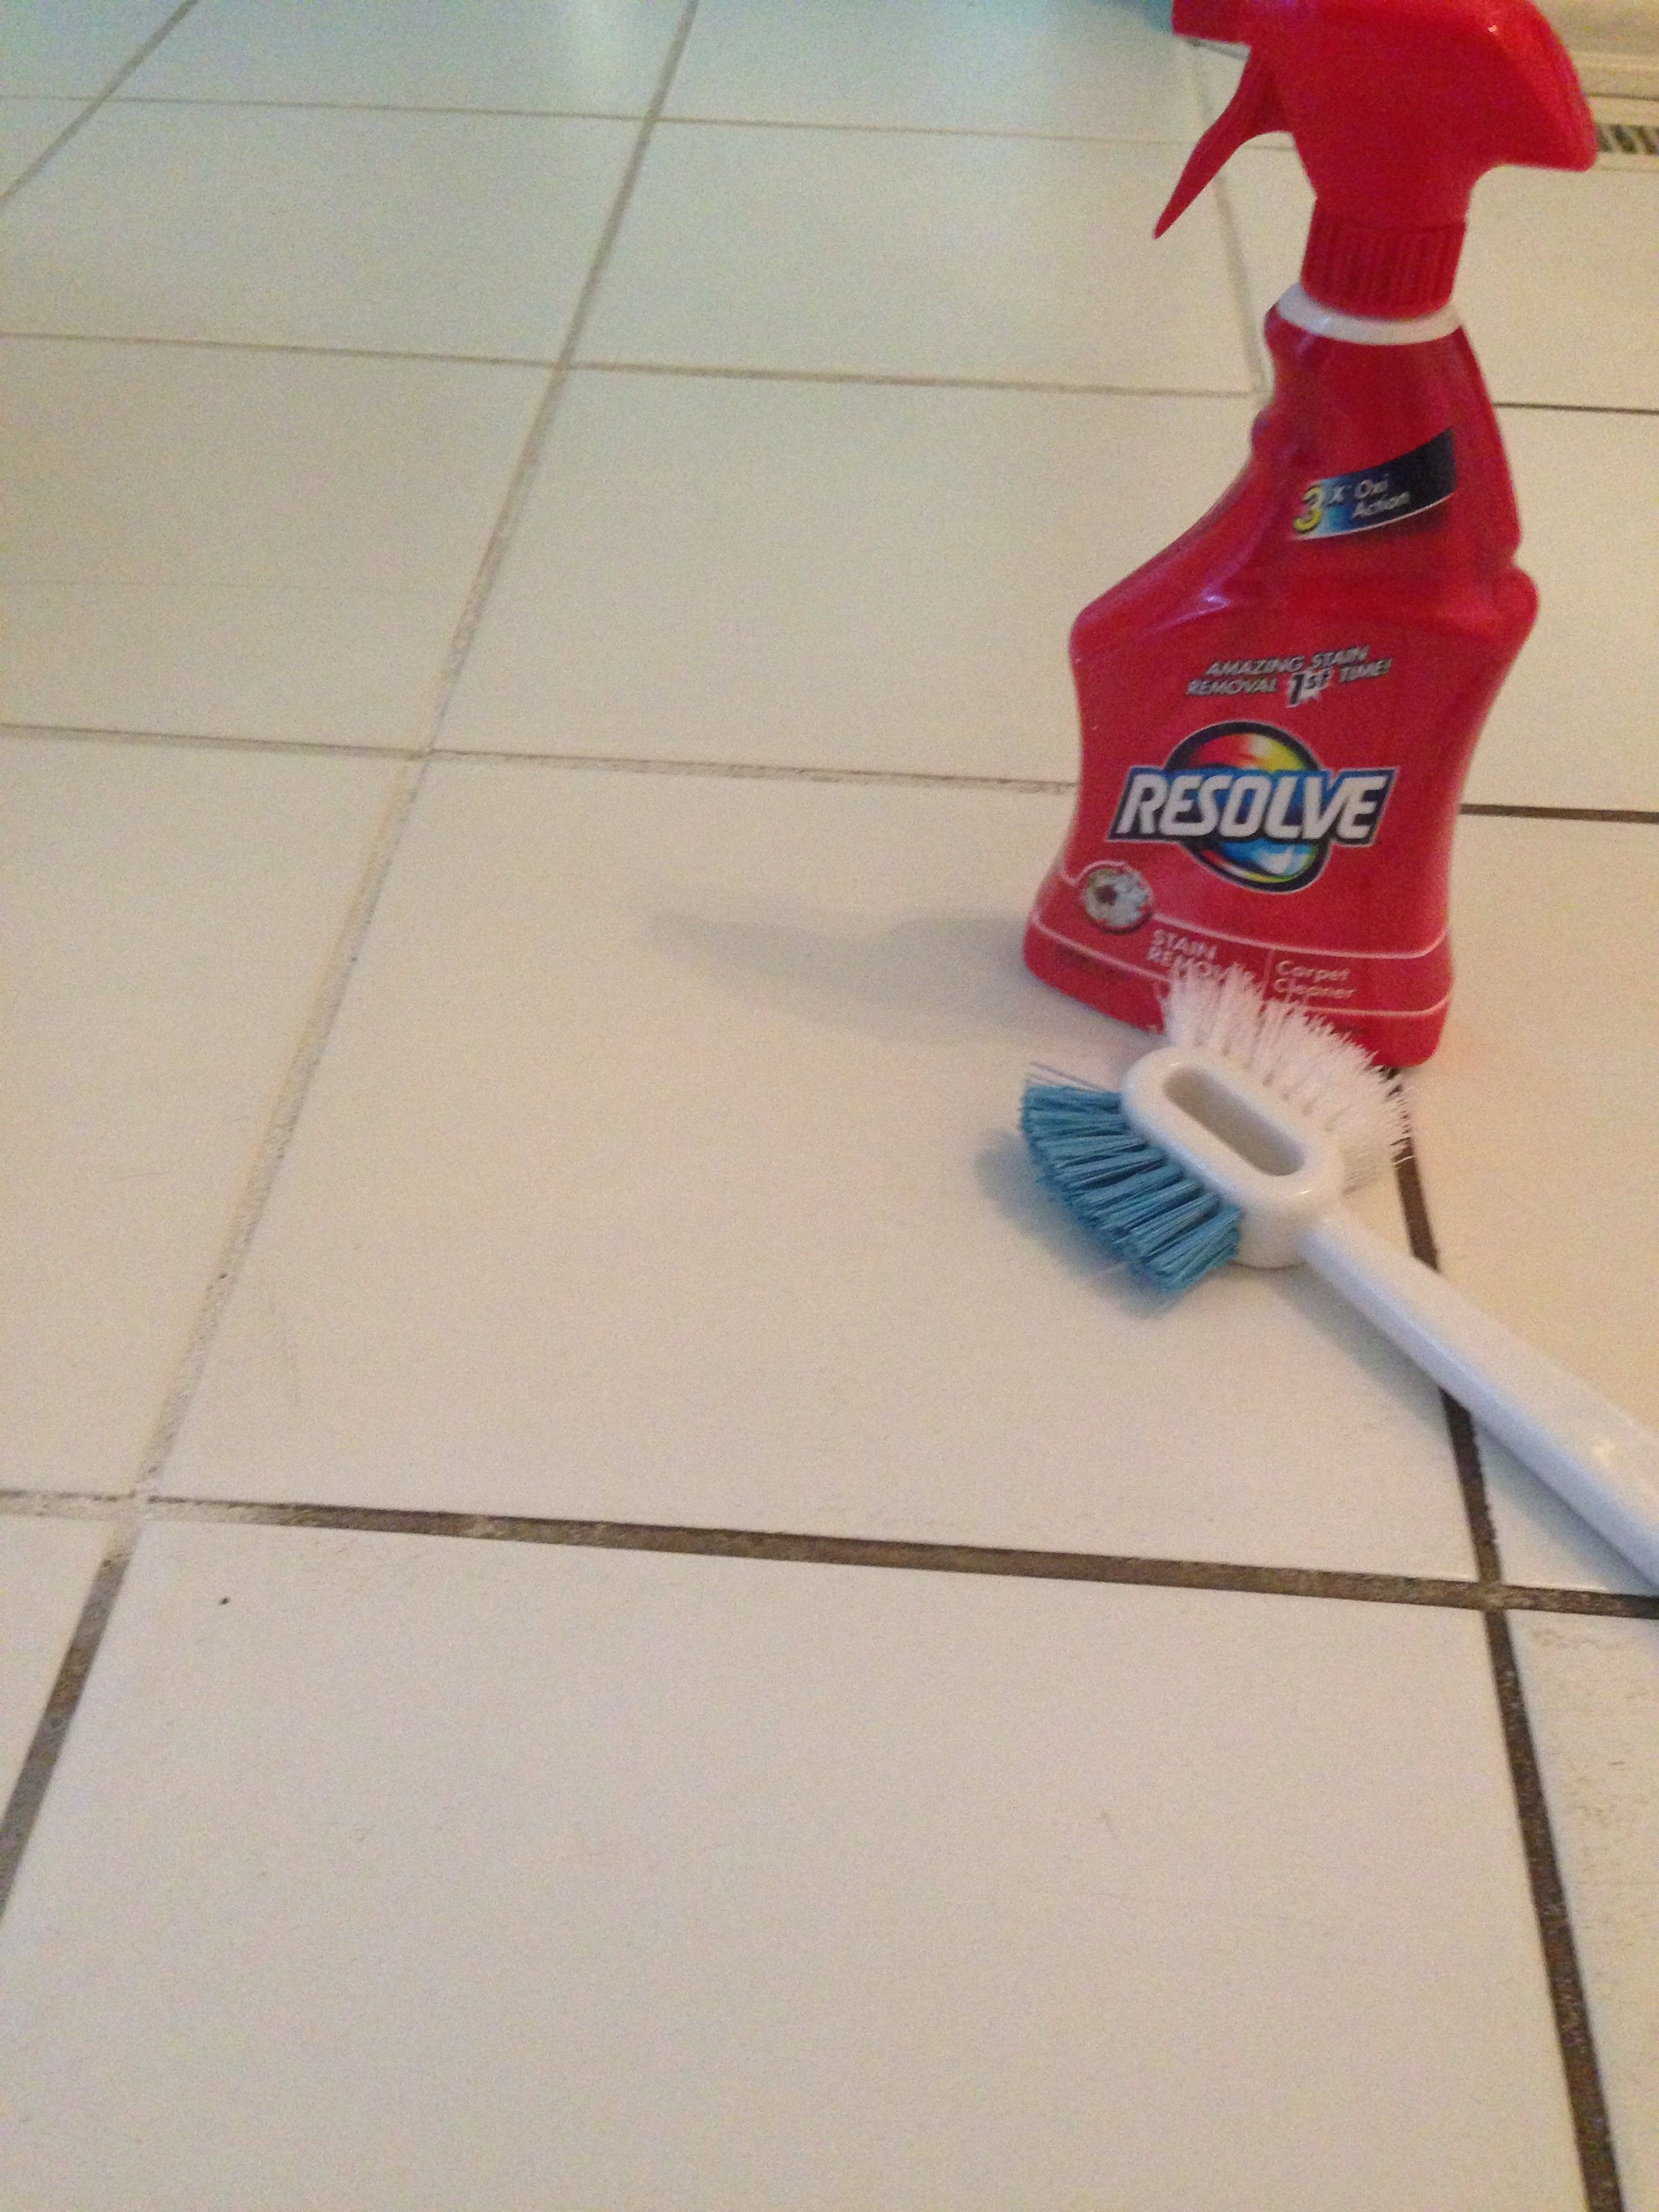 Cleaning Linoleum Floors With Vinegar And Baking Soda